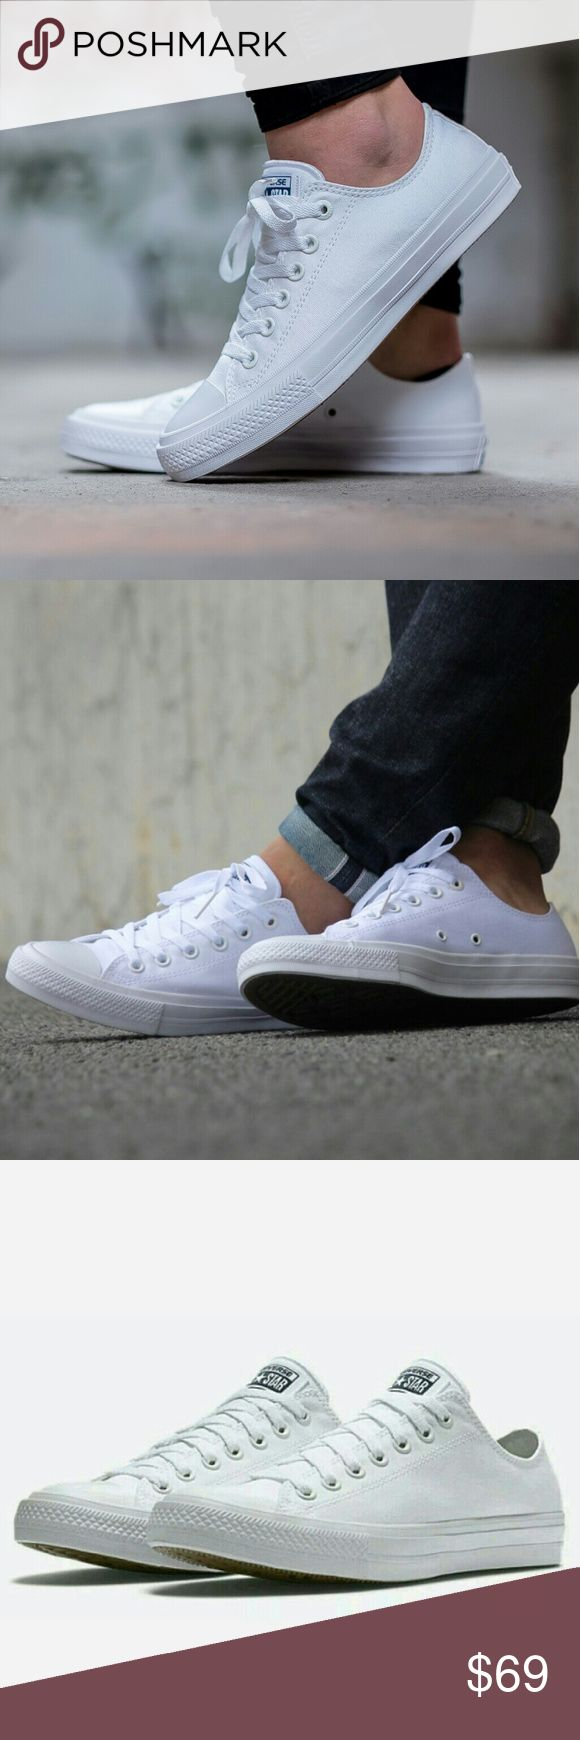 25+ Best Ideas about New Chuck Taylors on Pinterest | Converse ...